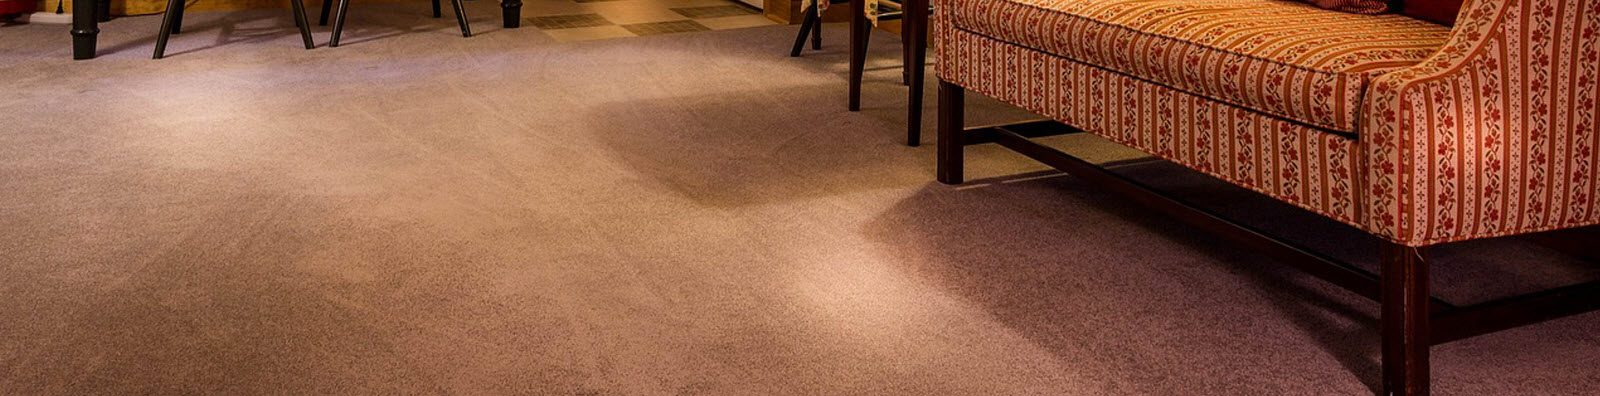 Carpet Dyeing - Agape Carpet Color Restoration | Oklahoma City, OK Certified Dyeing Specialists, Bleach Spot Repairs, Sun Damage Repair, Over- Dyes, ...